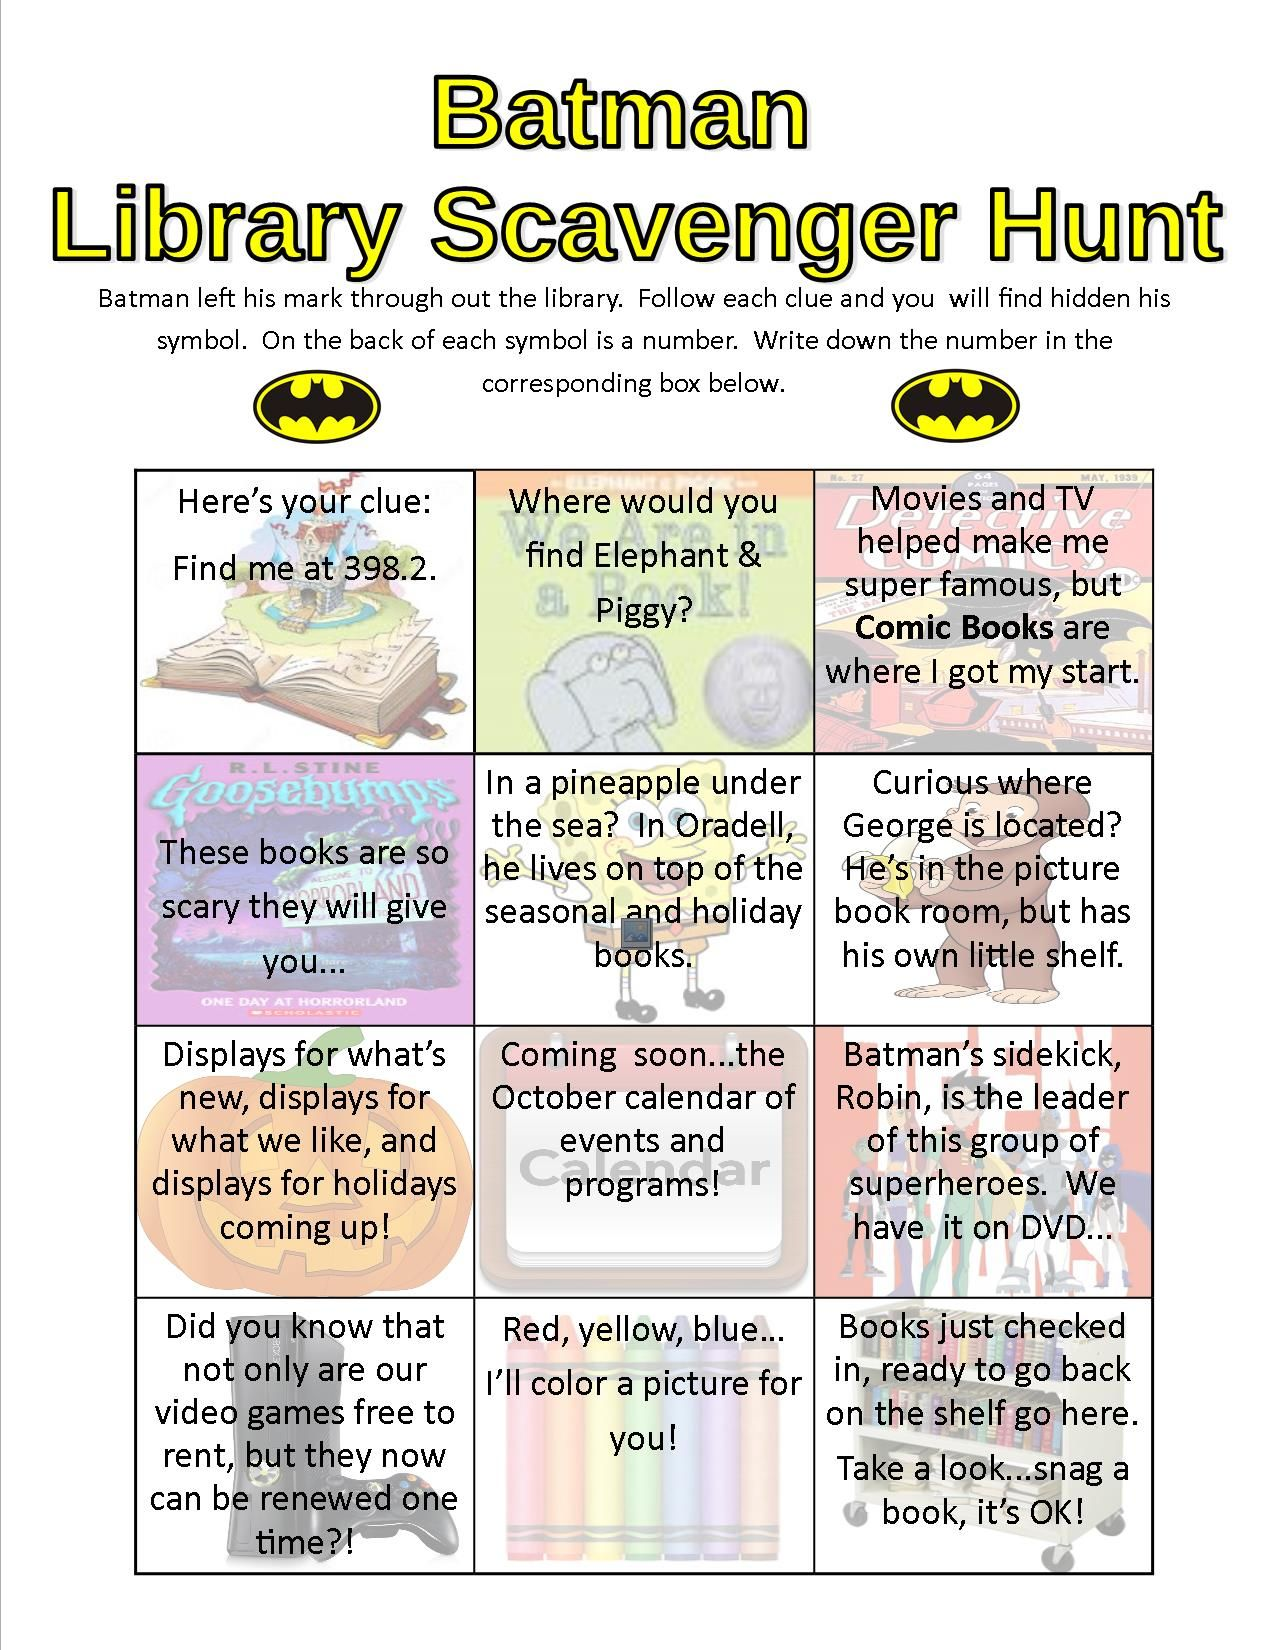 Batman Library Scavenger Hunt At The Oradell Free Public